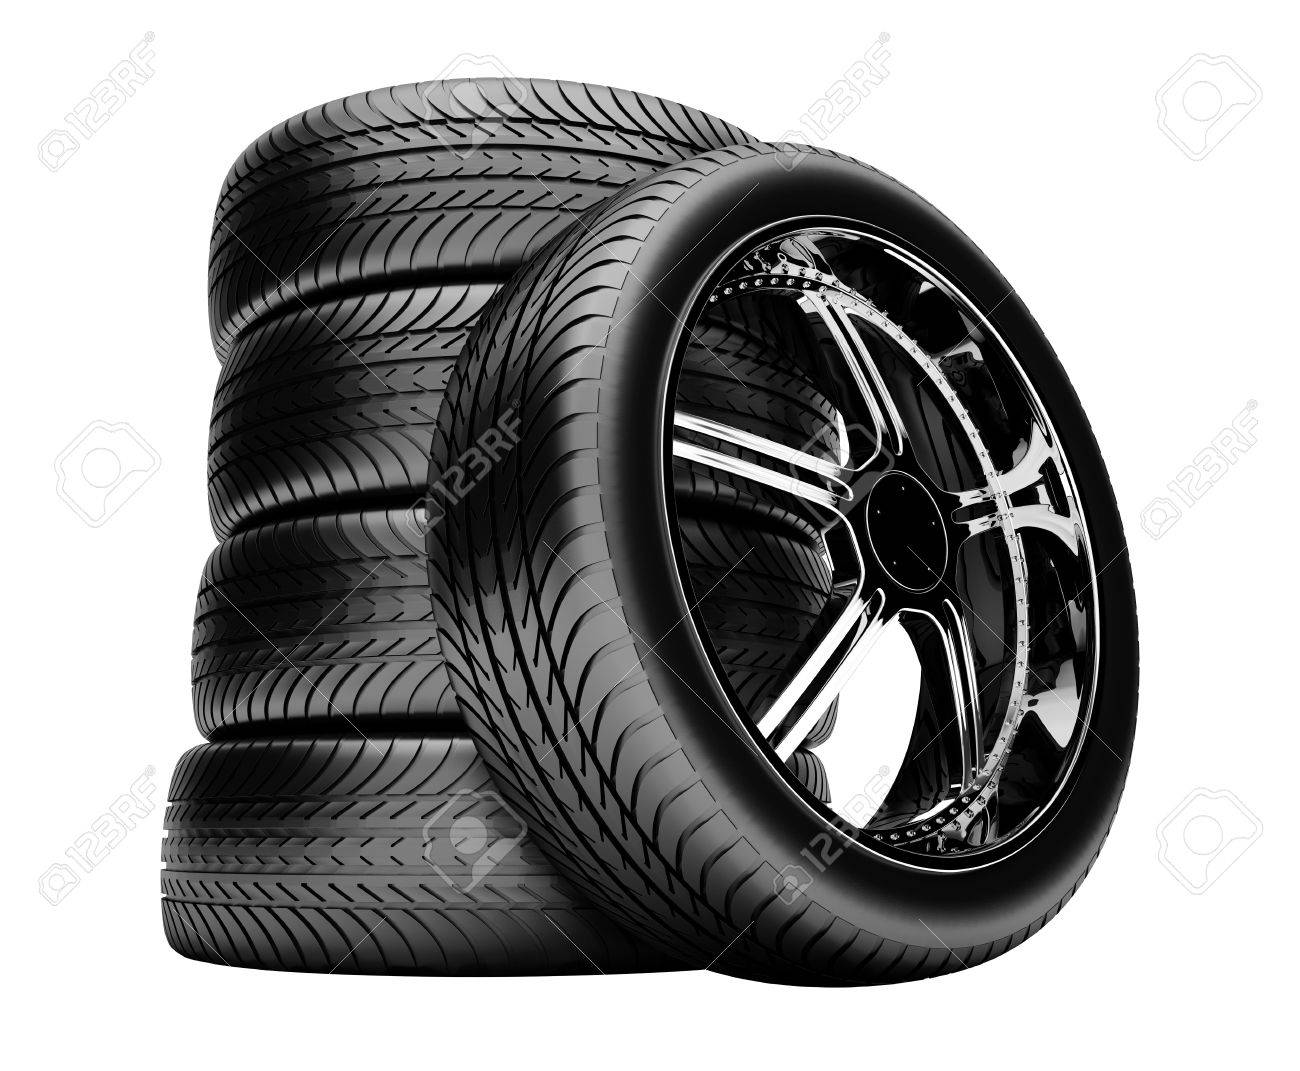 3d Tires Isolated On White Background With No Shadow Stock Photo 1300x1071